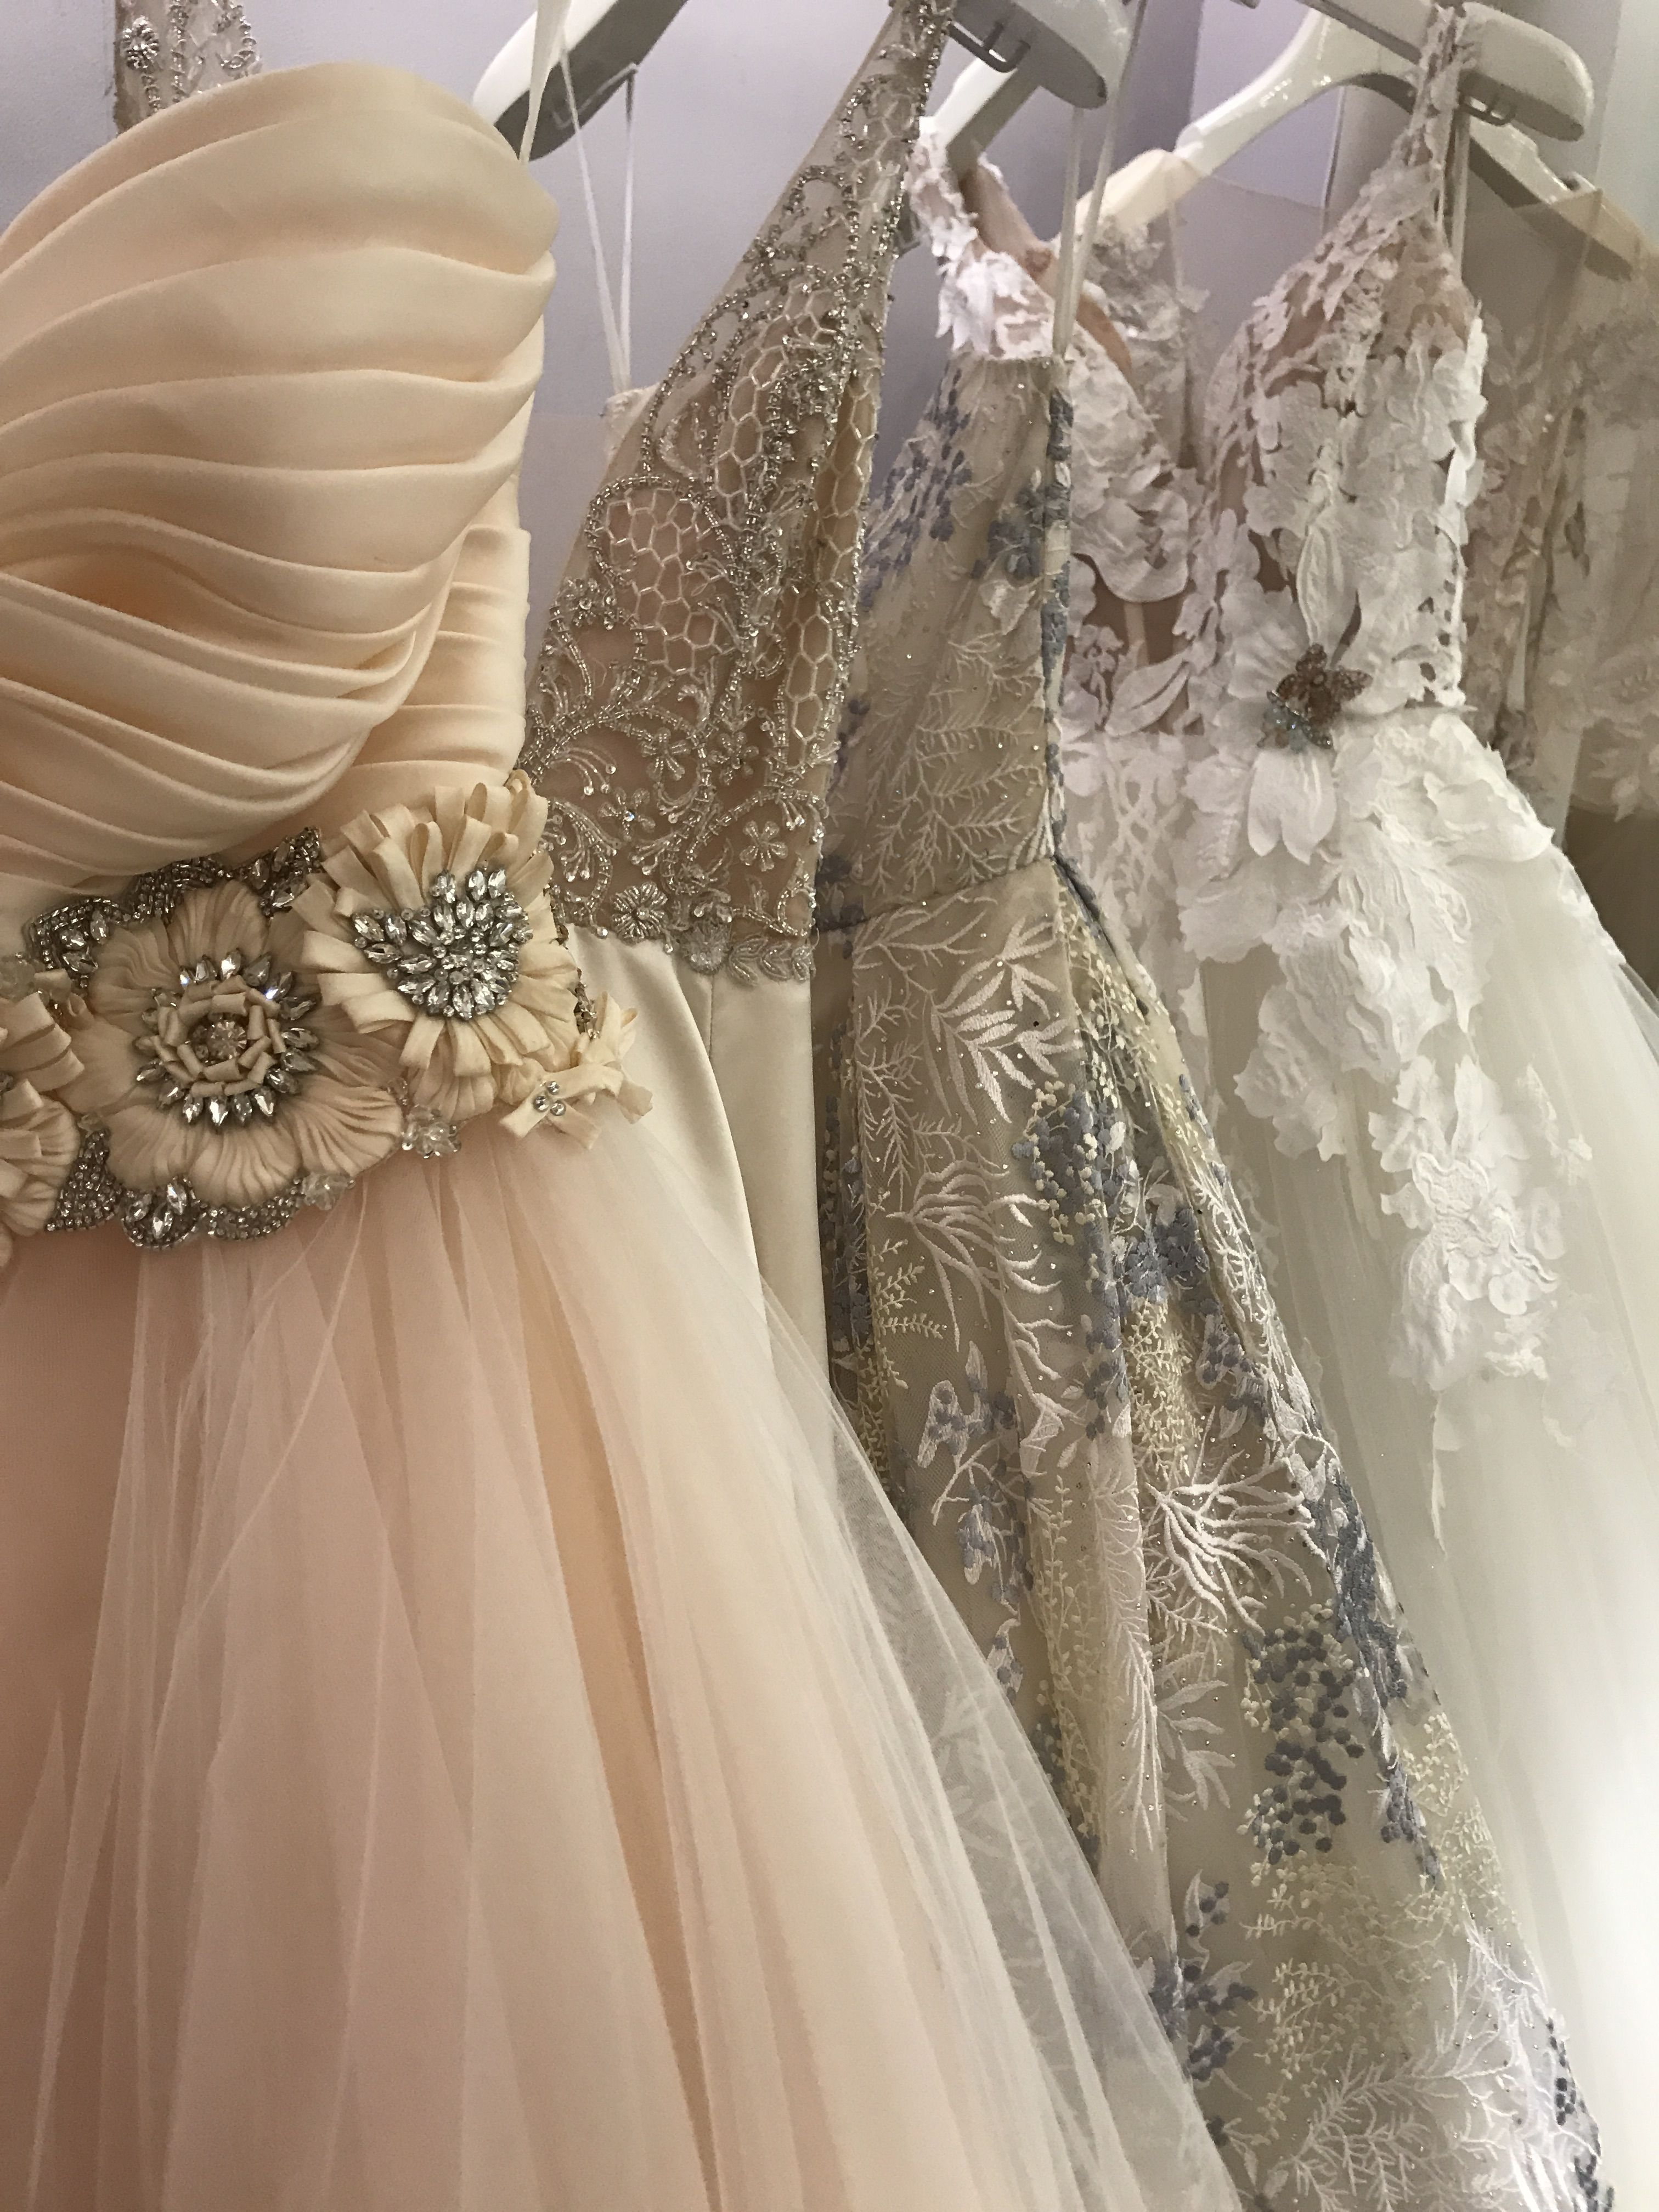 813e49fd5b60 Lazaro gowns at Kleinfeld Bridal in New York | Lazaro On The Go in ...